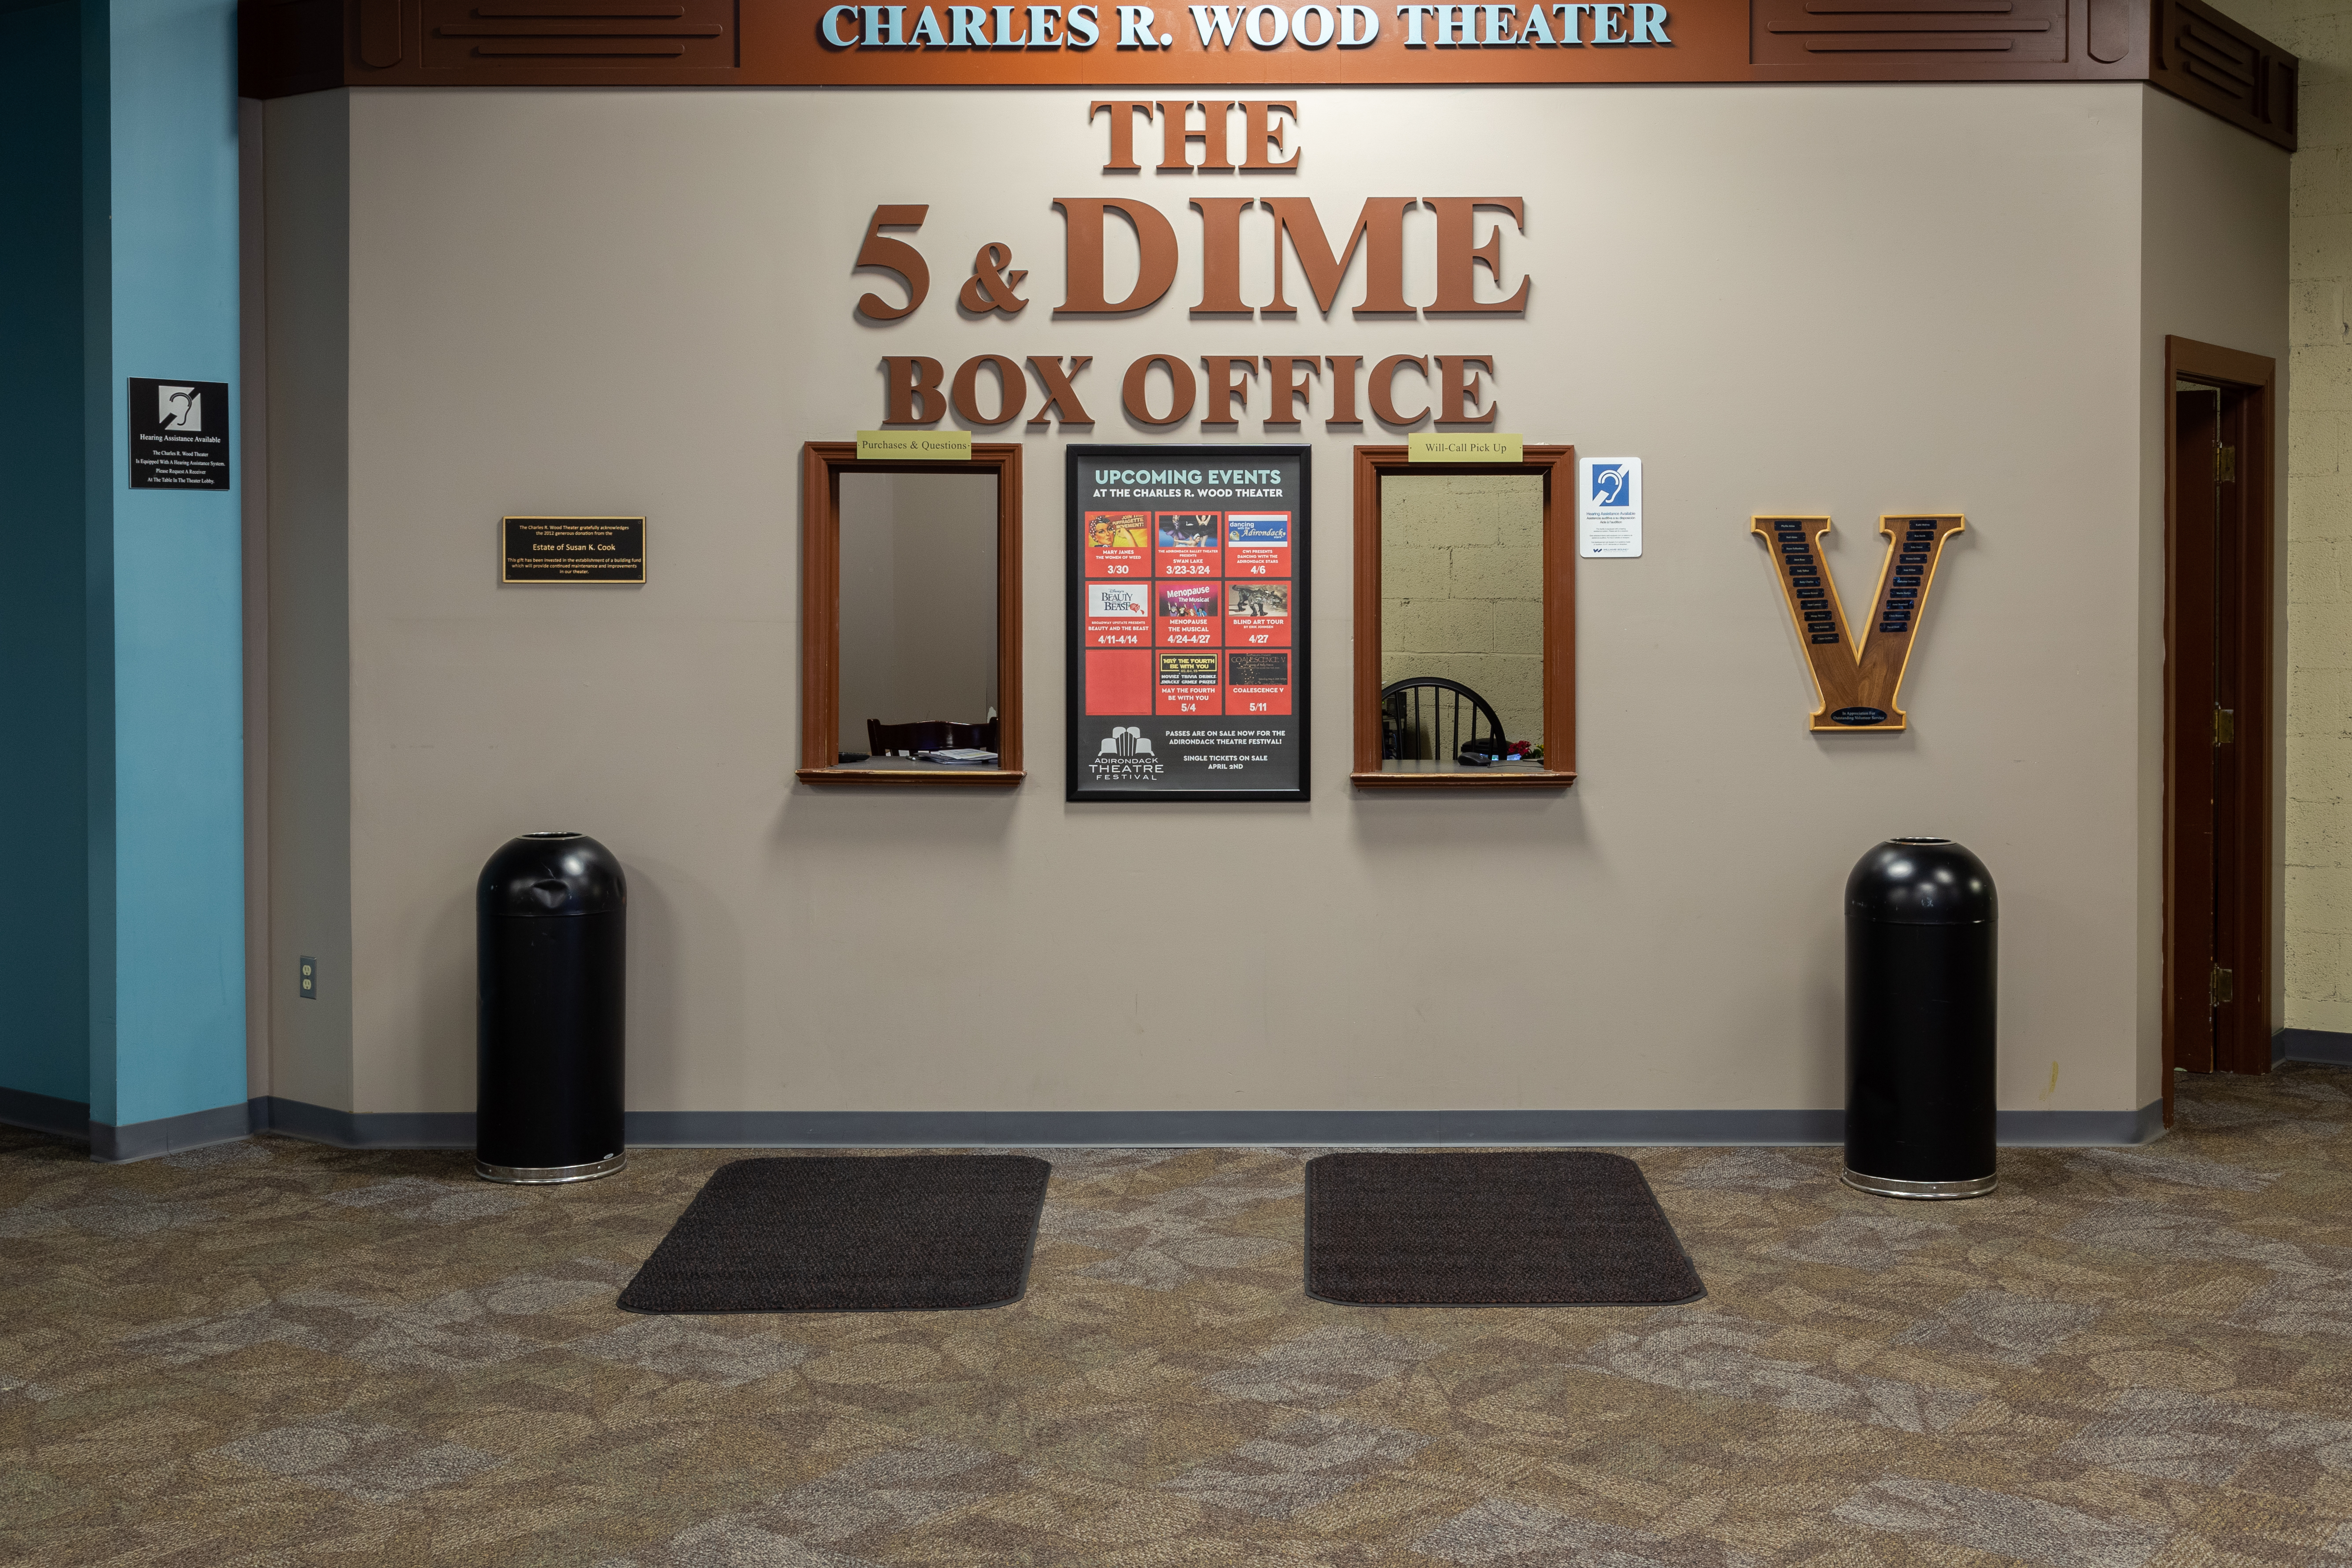 Wood Theater - Box Office